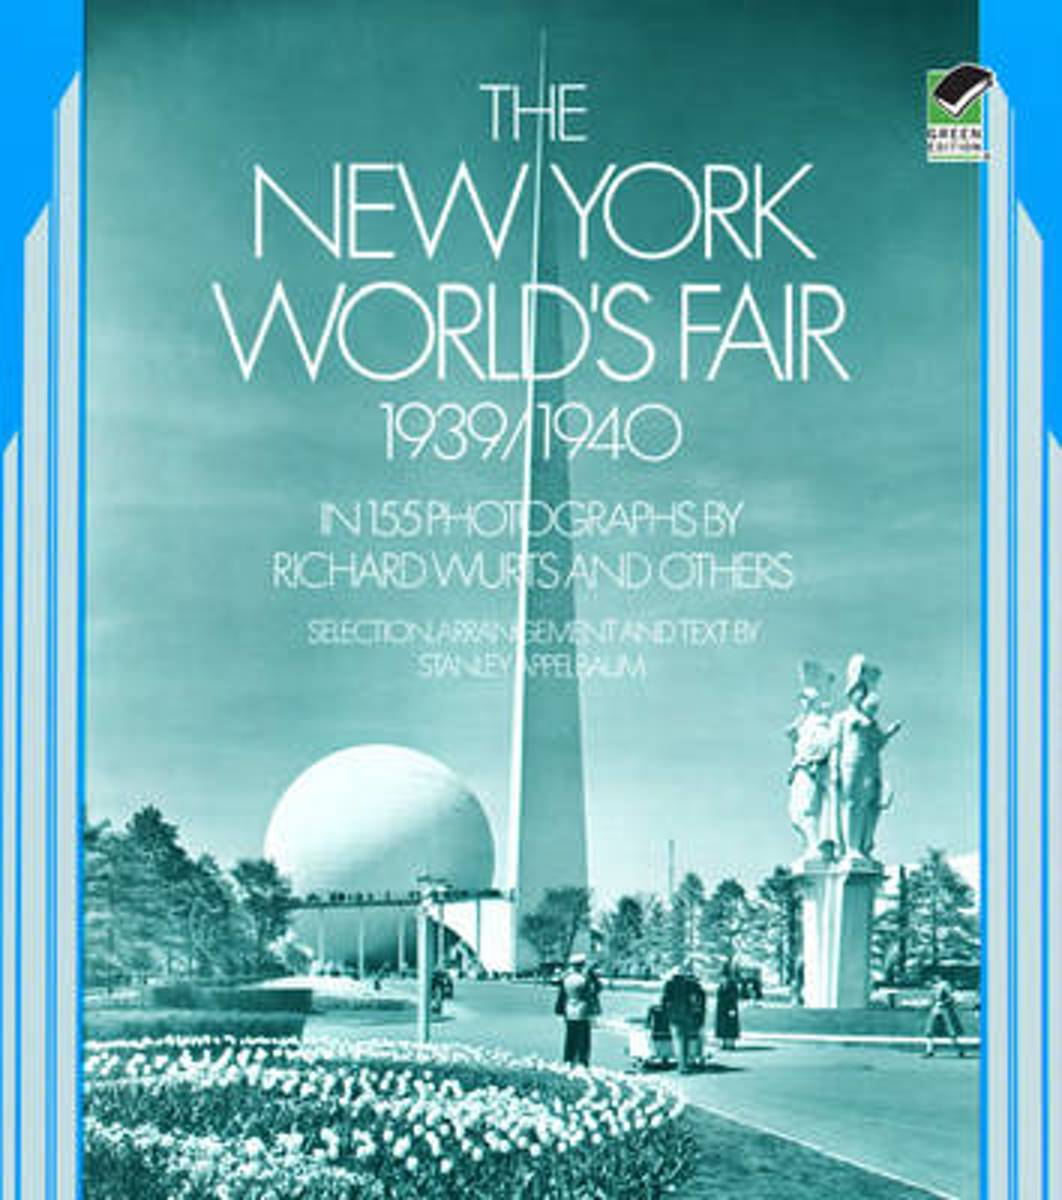 The New York World's Fair, 1939-40